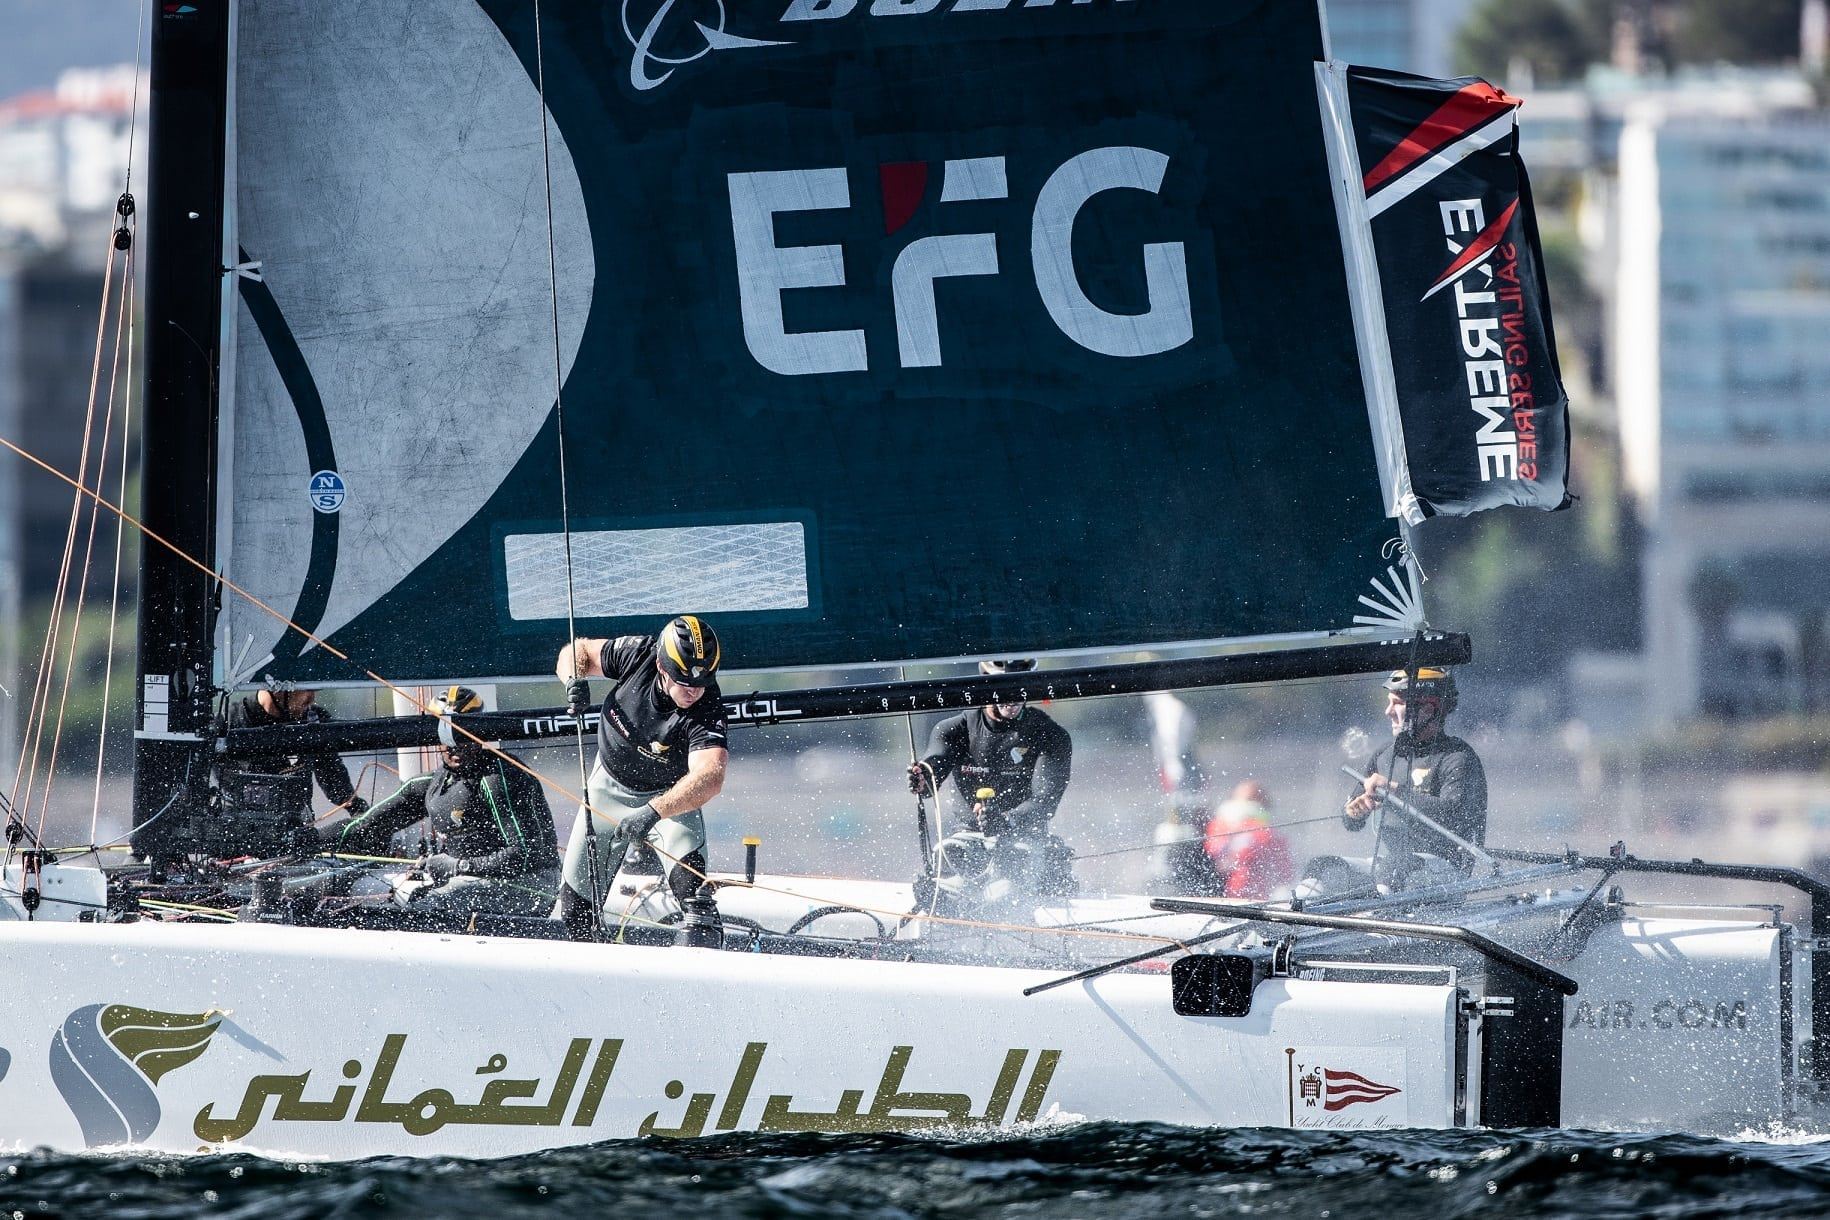 Oman Air team third in 2018 Extreme Sailing Series after competitive event in Portugal